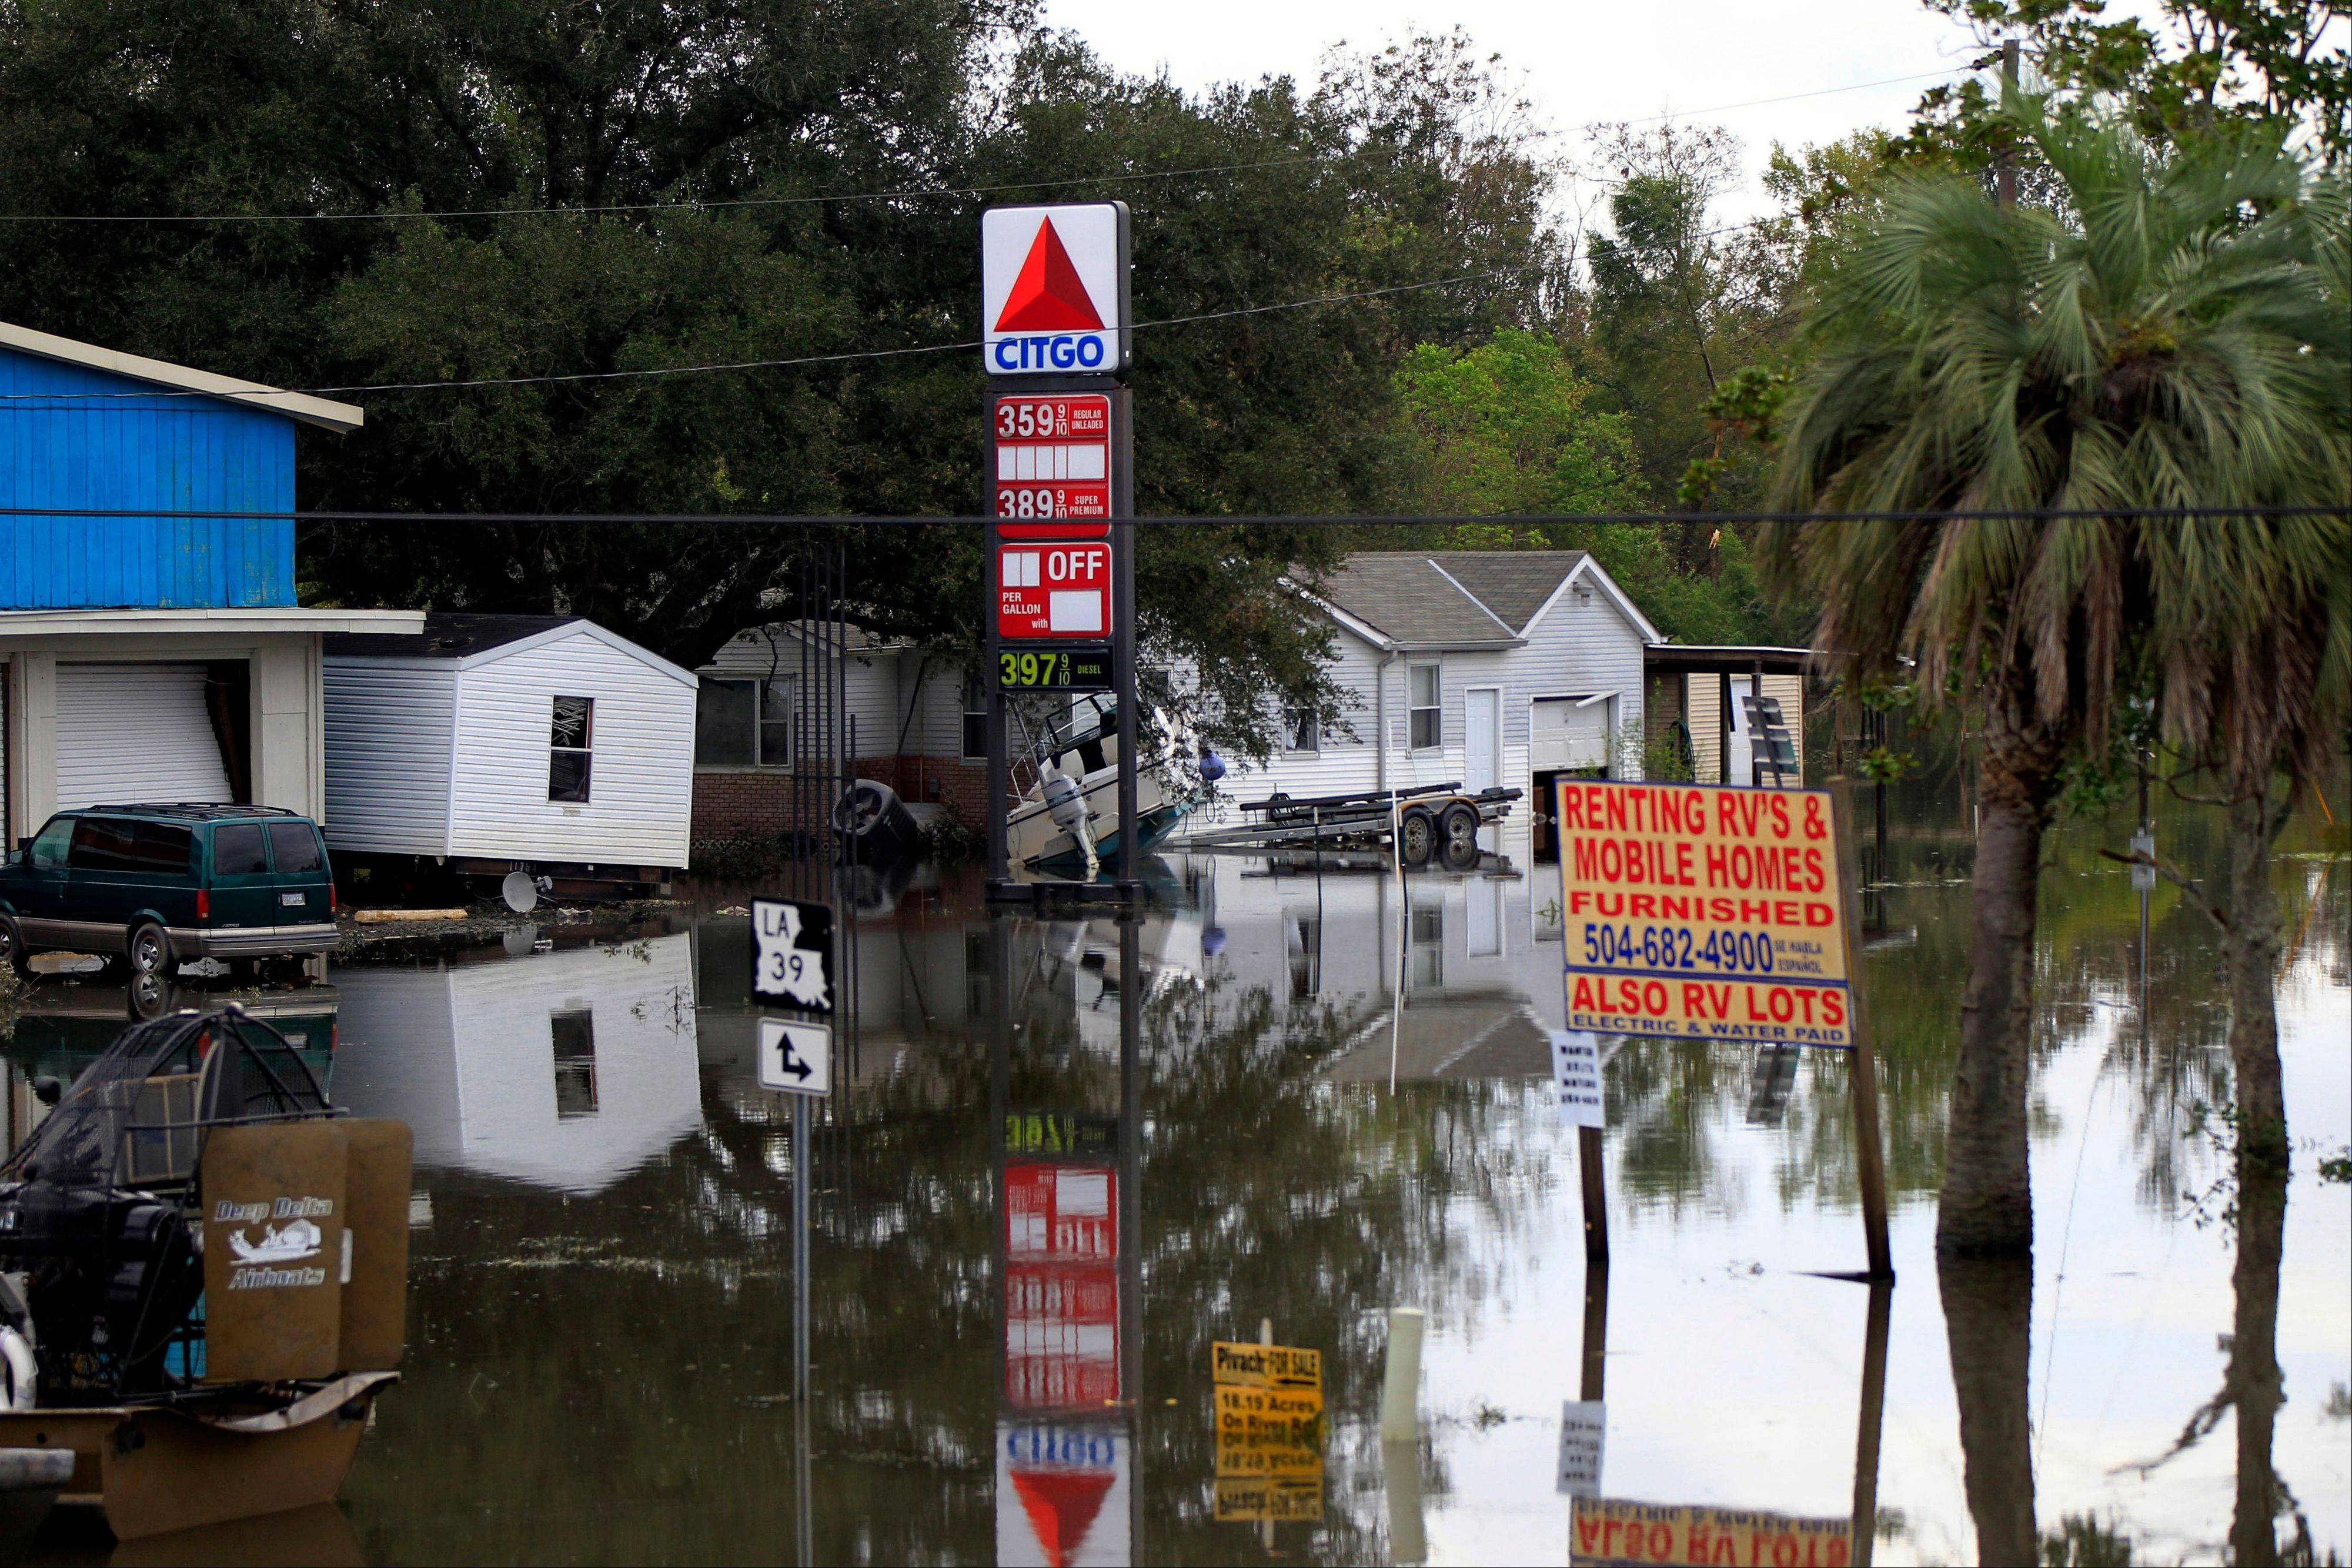 Floodwaters from Hurricane Isaac inundate structures in Scaresdale , La., Sunday. More than 200,000 people across Louisiana still didn't have any power five days after Hurricane Isaac ravaged the state. Thousands of evacuees remained at shelters or bunked with friends or relatives.